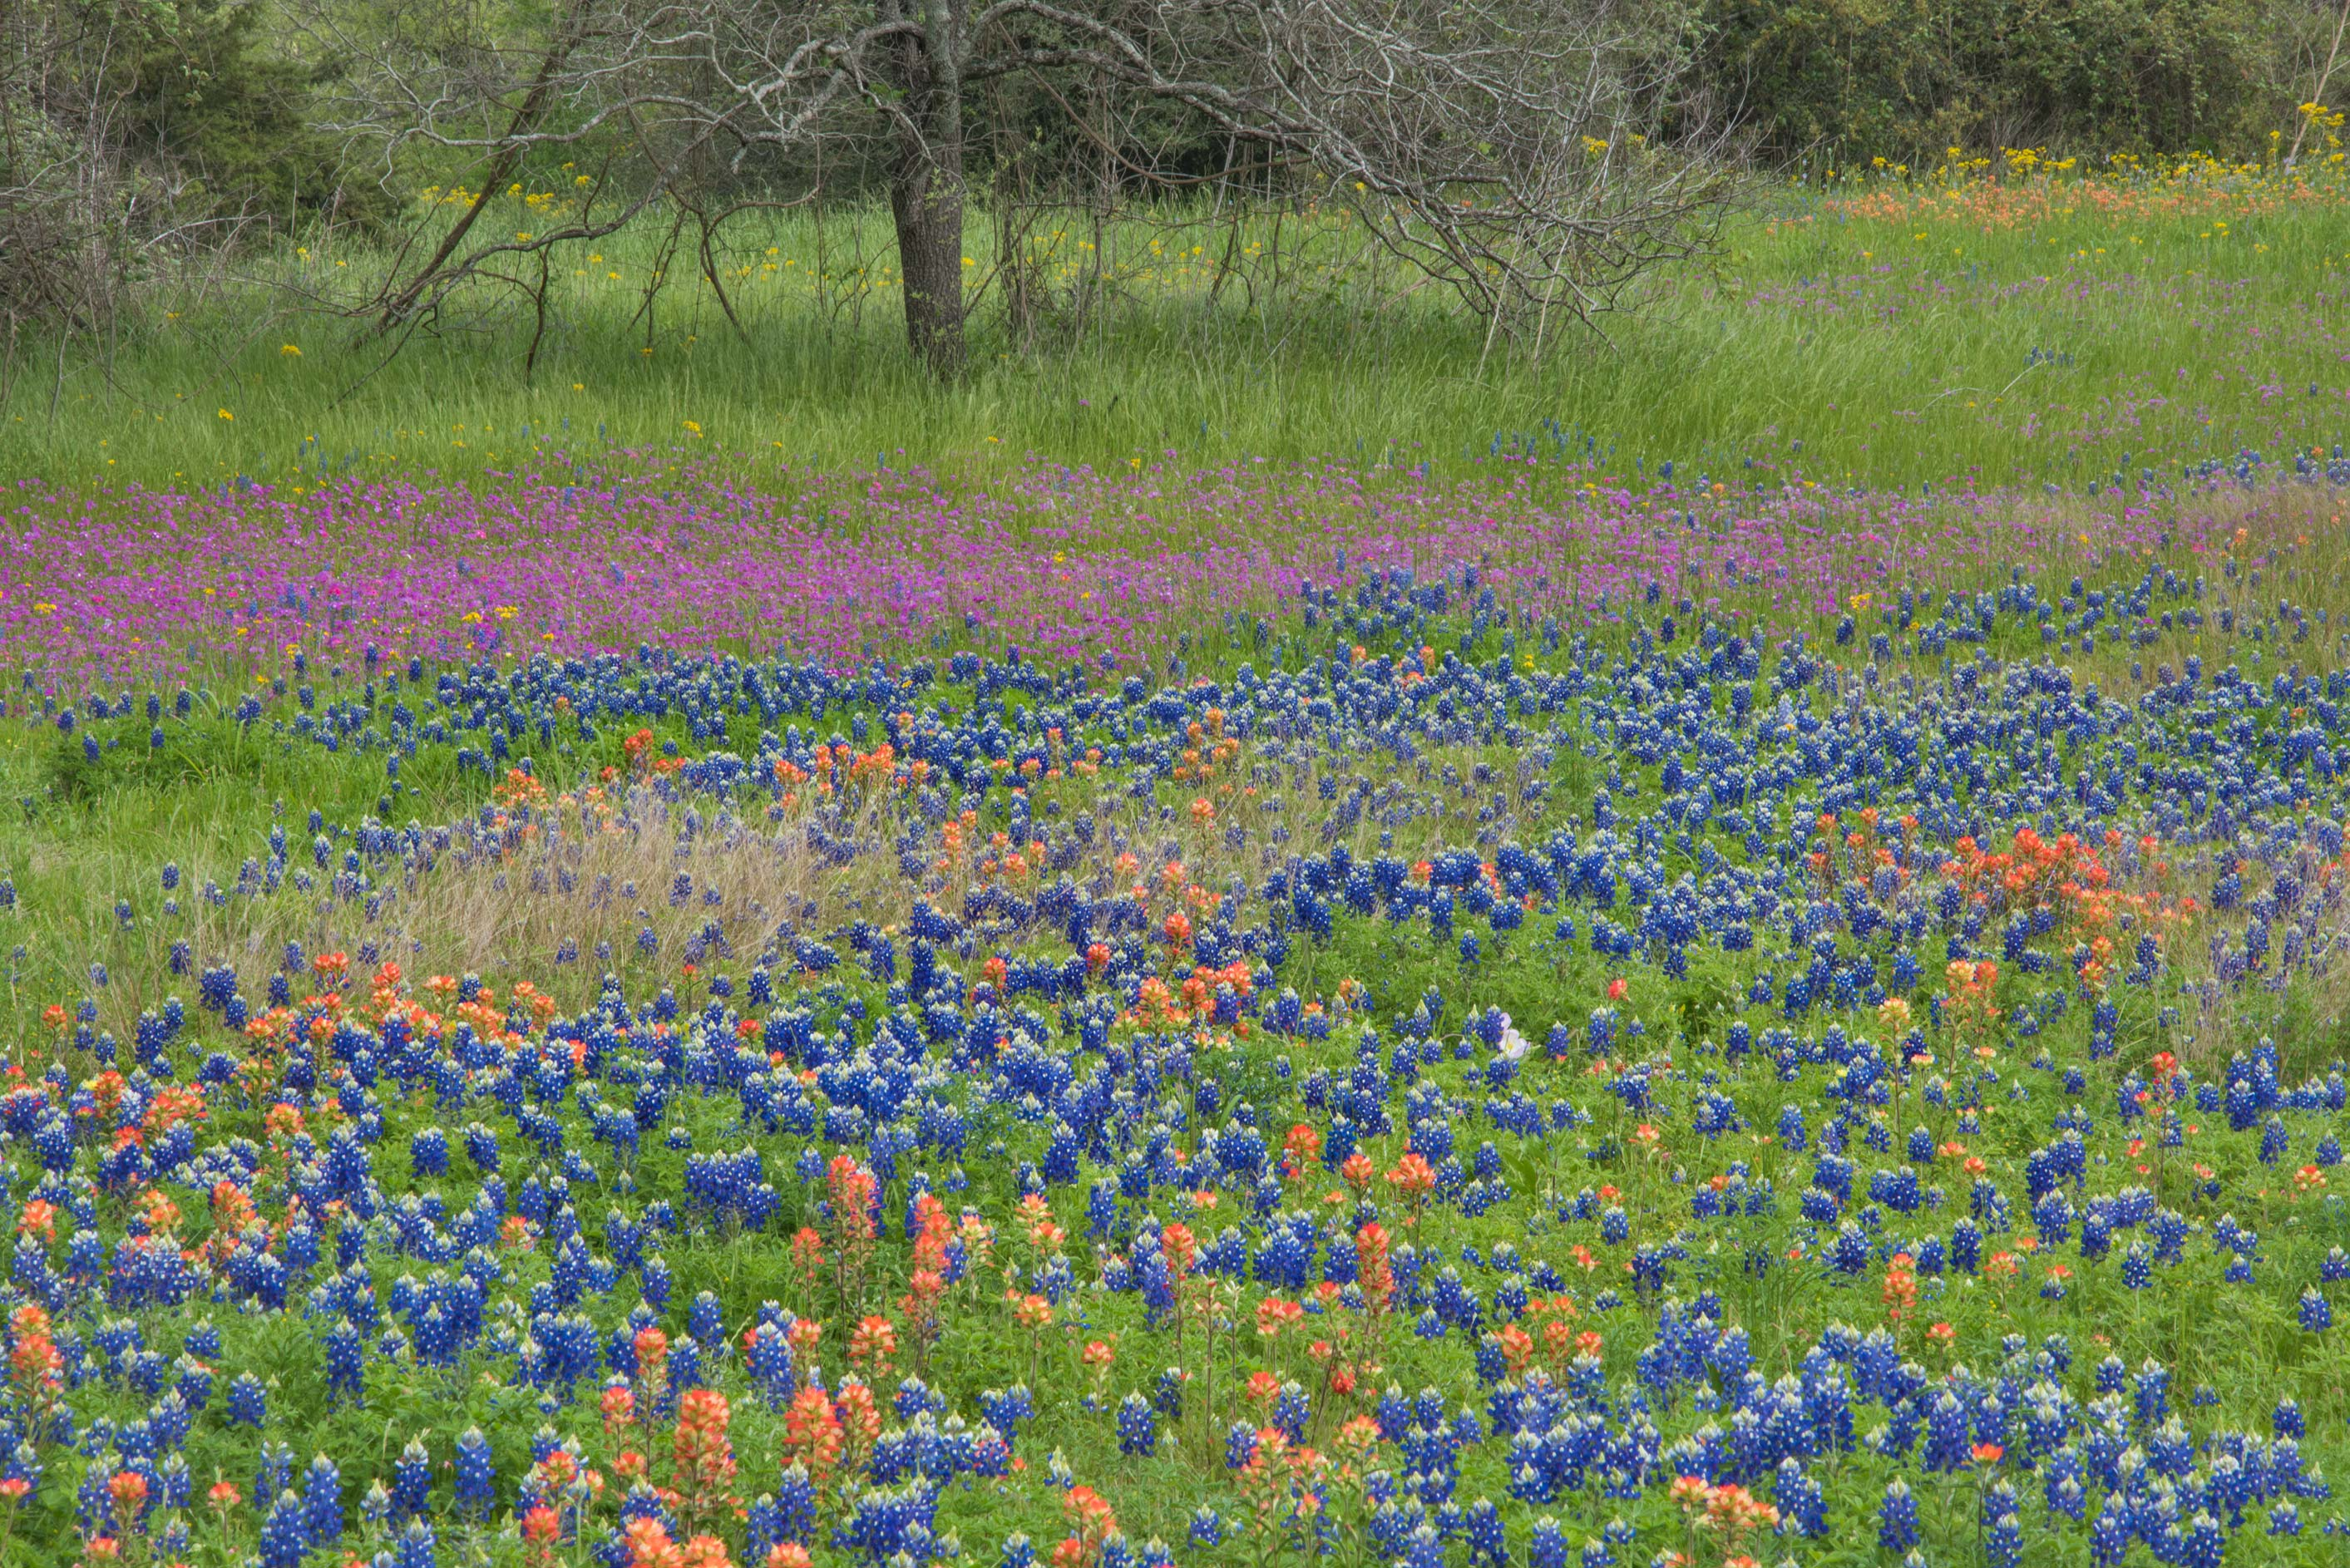 Field of flowers in Washington-on-the-Brazos State Historic Site. Washington, Texas